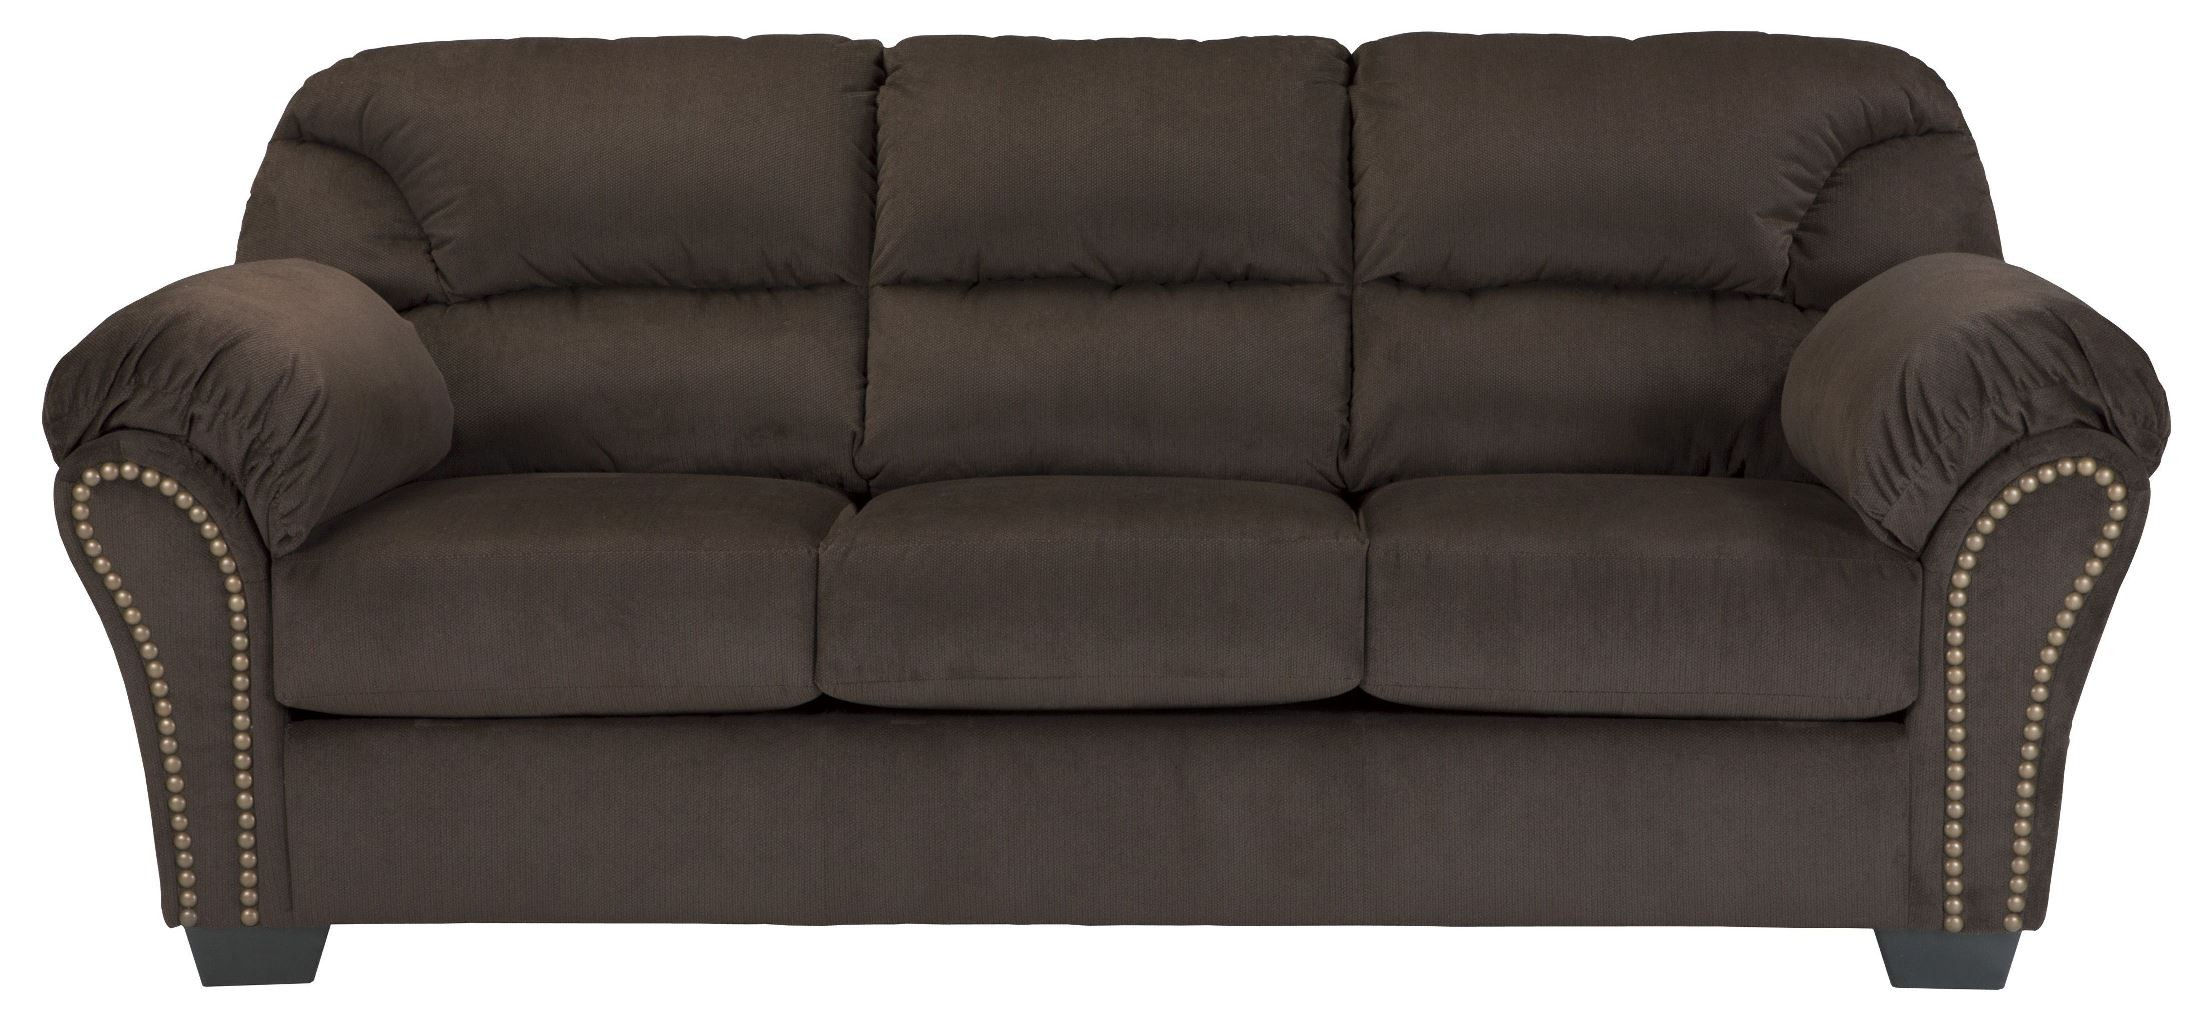 kinlock chocolate sofa from ashley 3340138 coleman. Black Bedroom Furniture Sets. Home Design Ideas